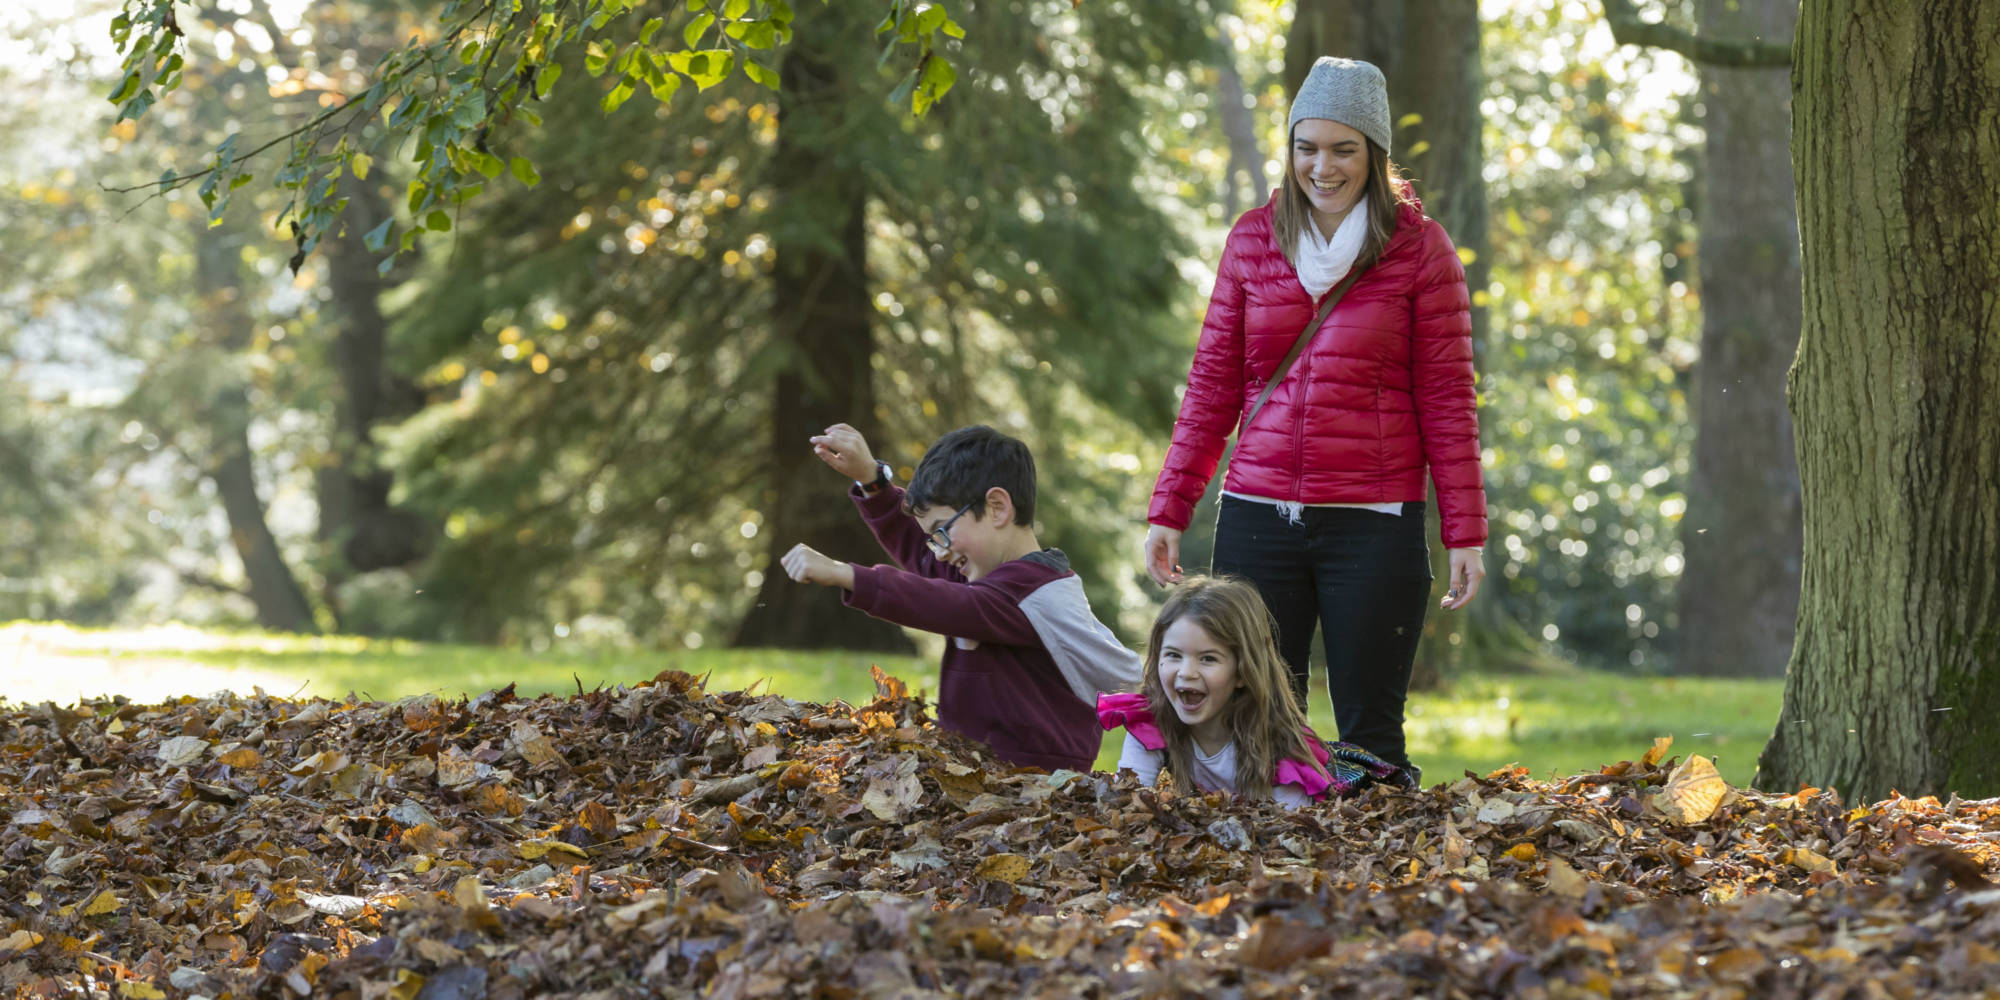 Children playing in autumn leaves at Waddesdon